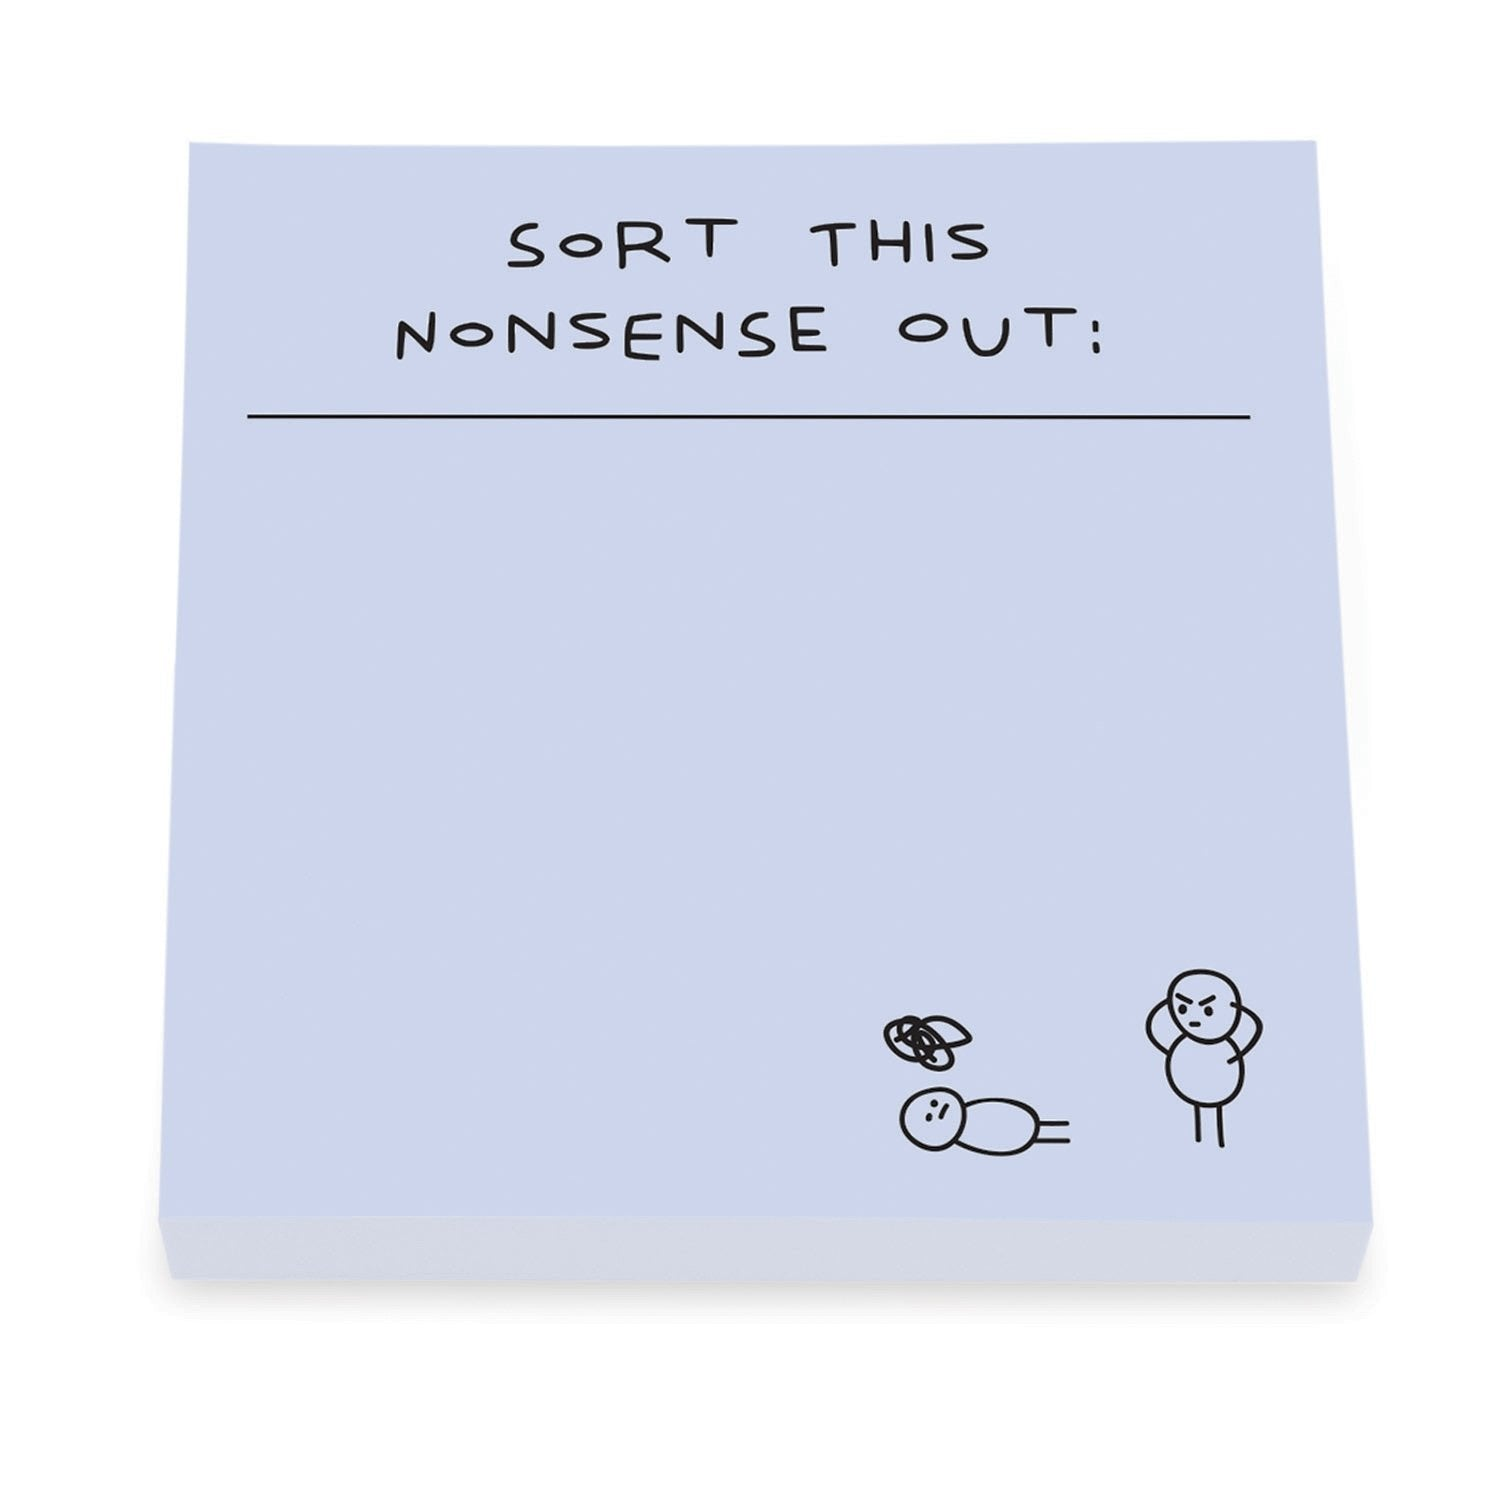 Nonsense Sticky Notes